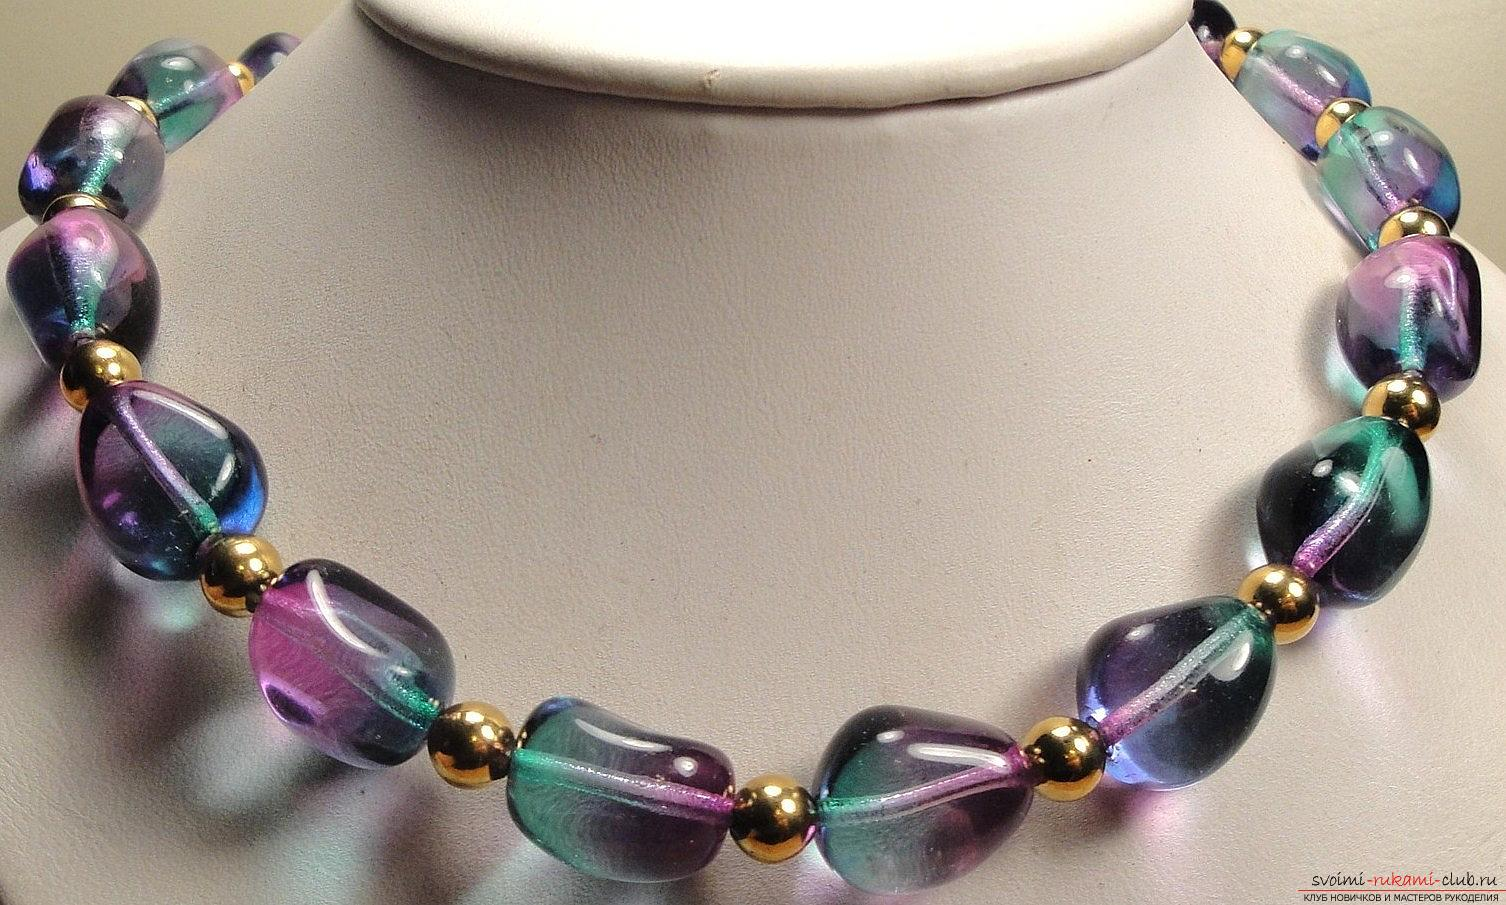 Beautiful beads with transparent clay with their own hands - colored beads. Photo №6